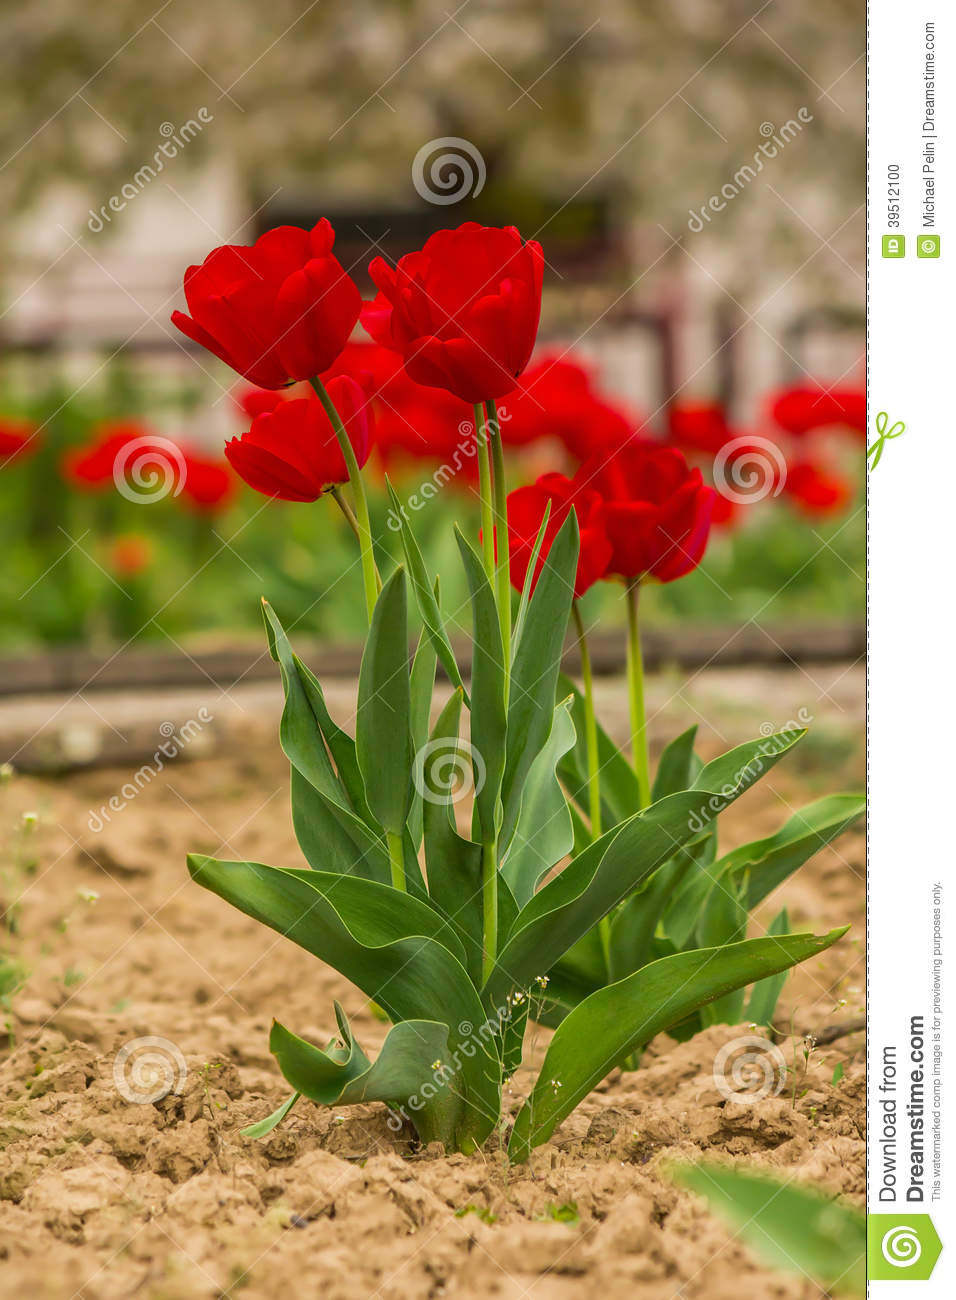 Fiew red tulip on color blurred background